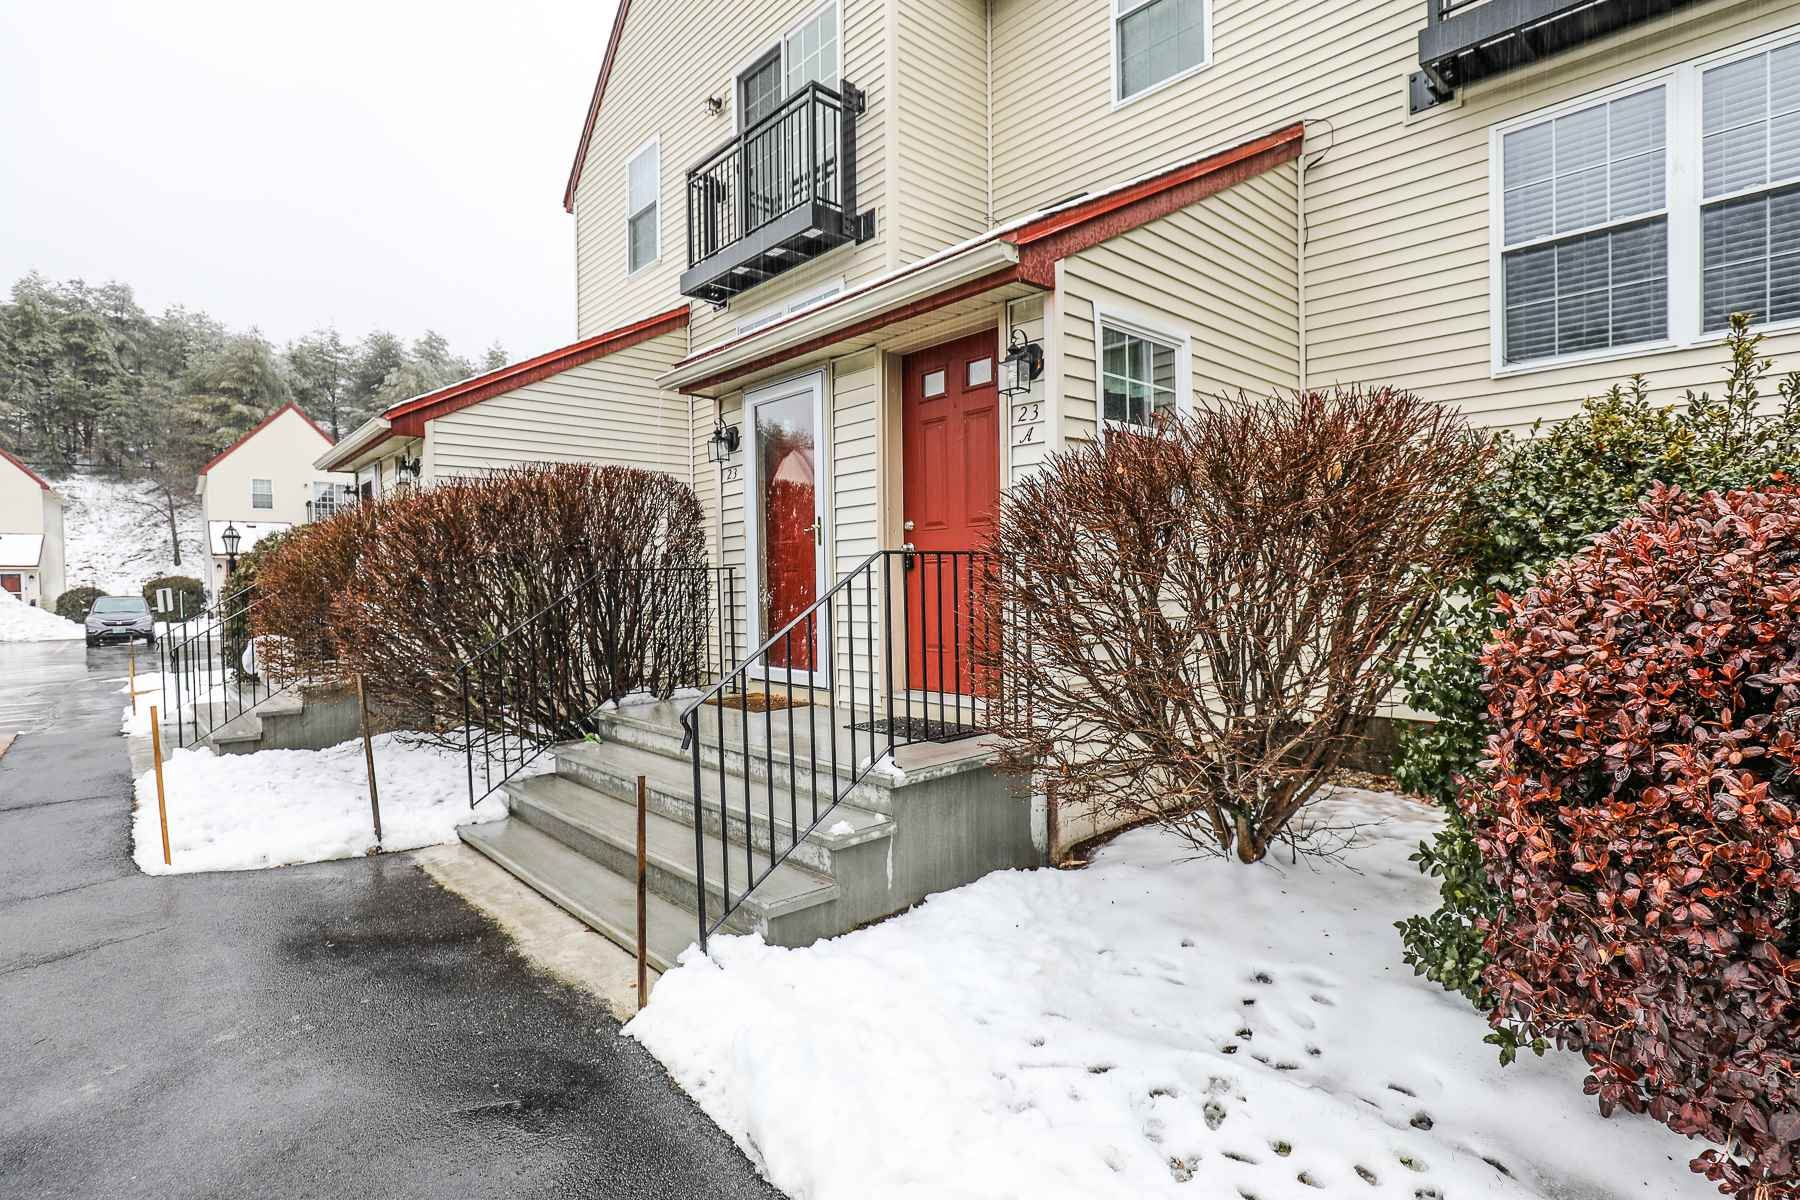 23A Colonial Drive, Merrimack, NH 03054 - #: 4793212